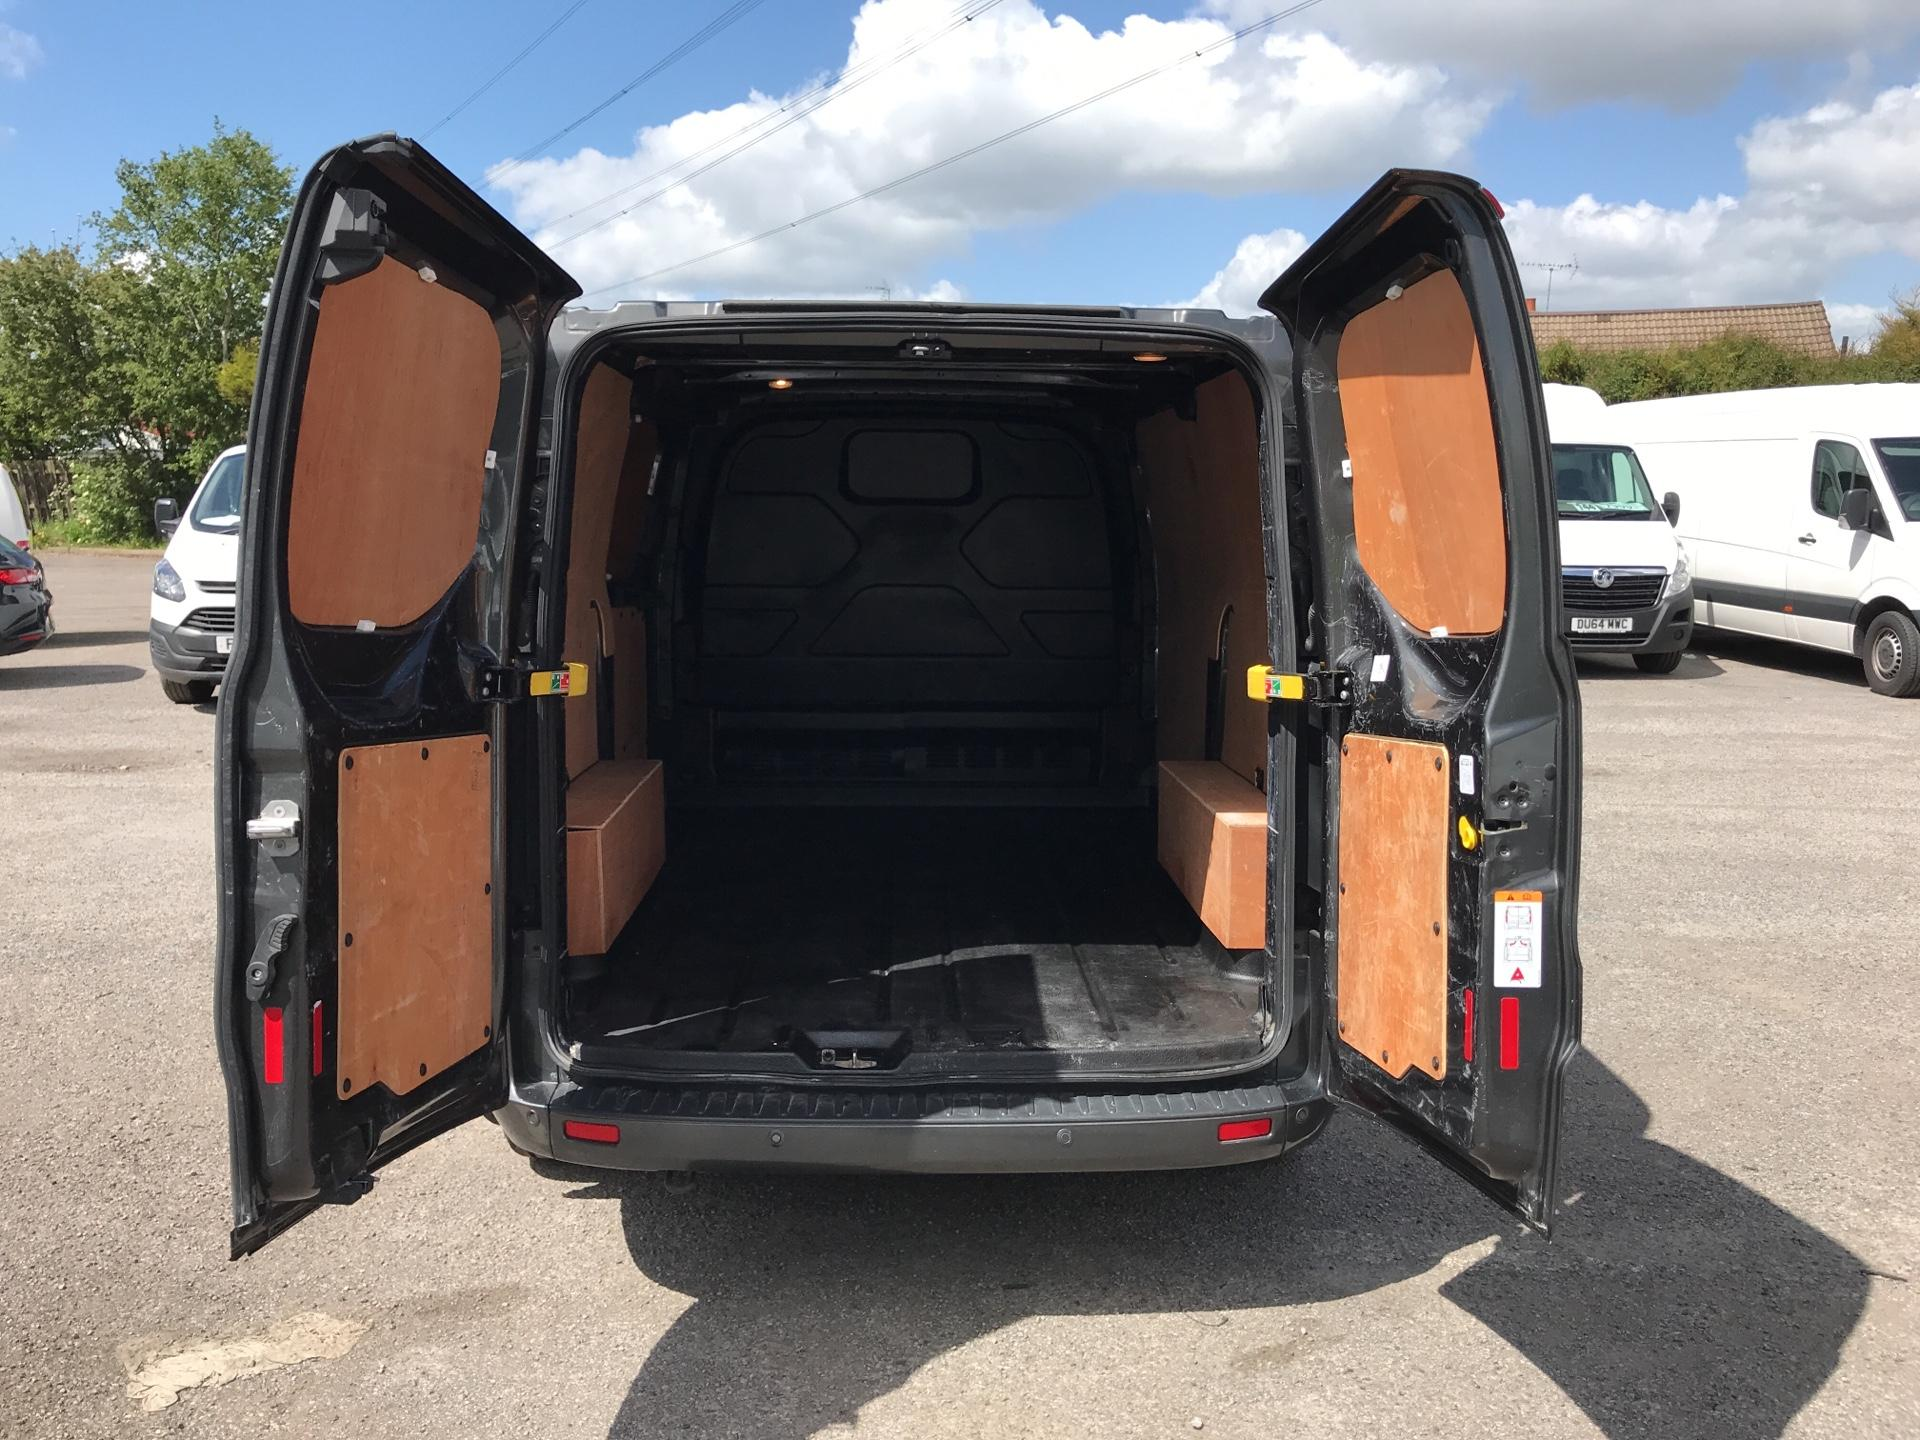 2016 Ford Transit Custom 2.2 Tdci 155Ps Low Roof Limited Van EURO 5 (MA16FMP) Image 16